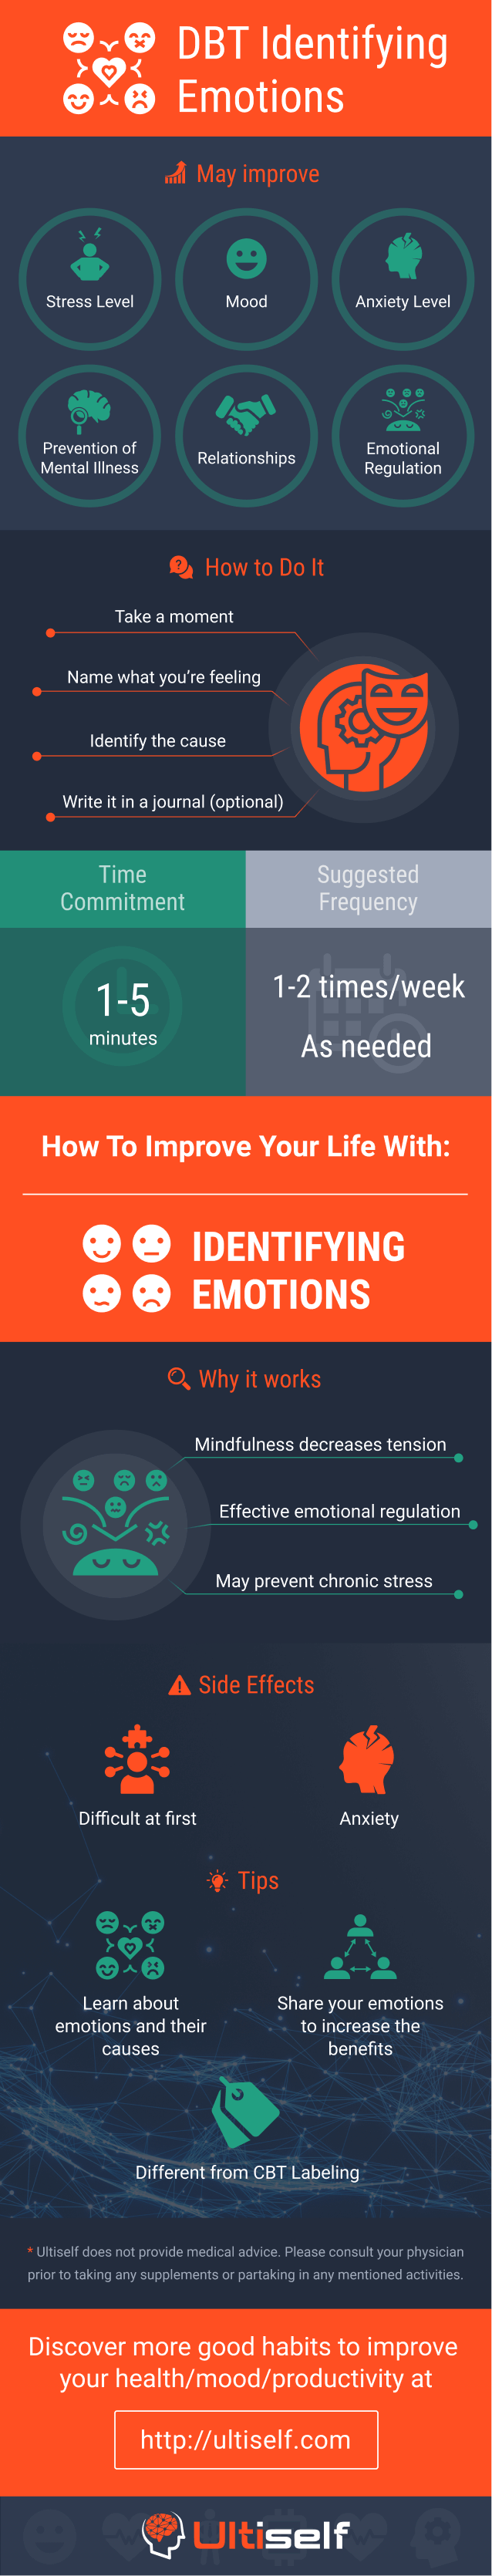 Identifying Emotions infographic